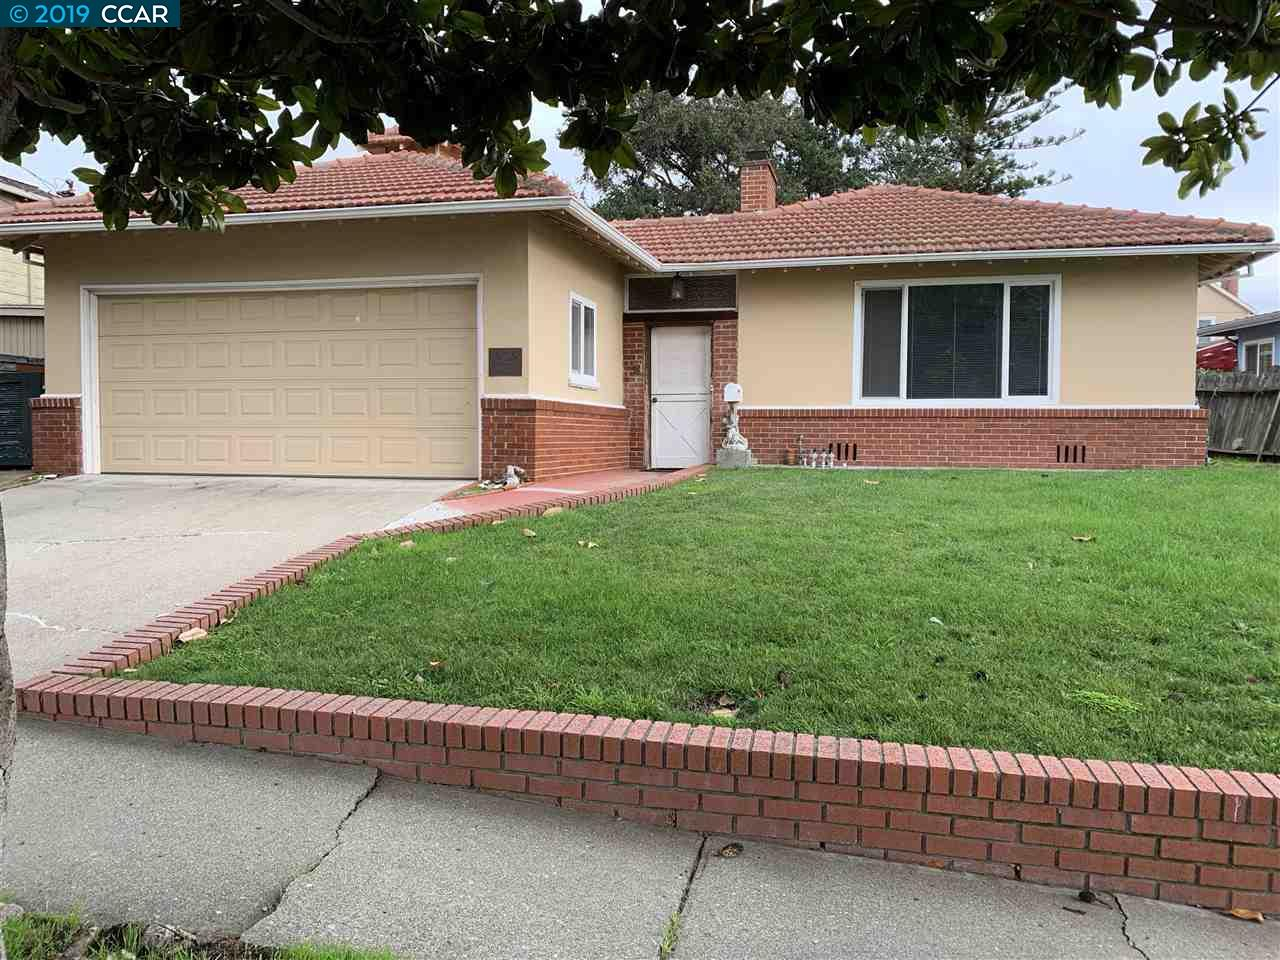 525 NAPA AVE, RODEO, CA 94572